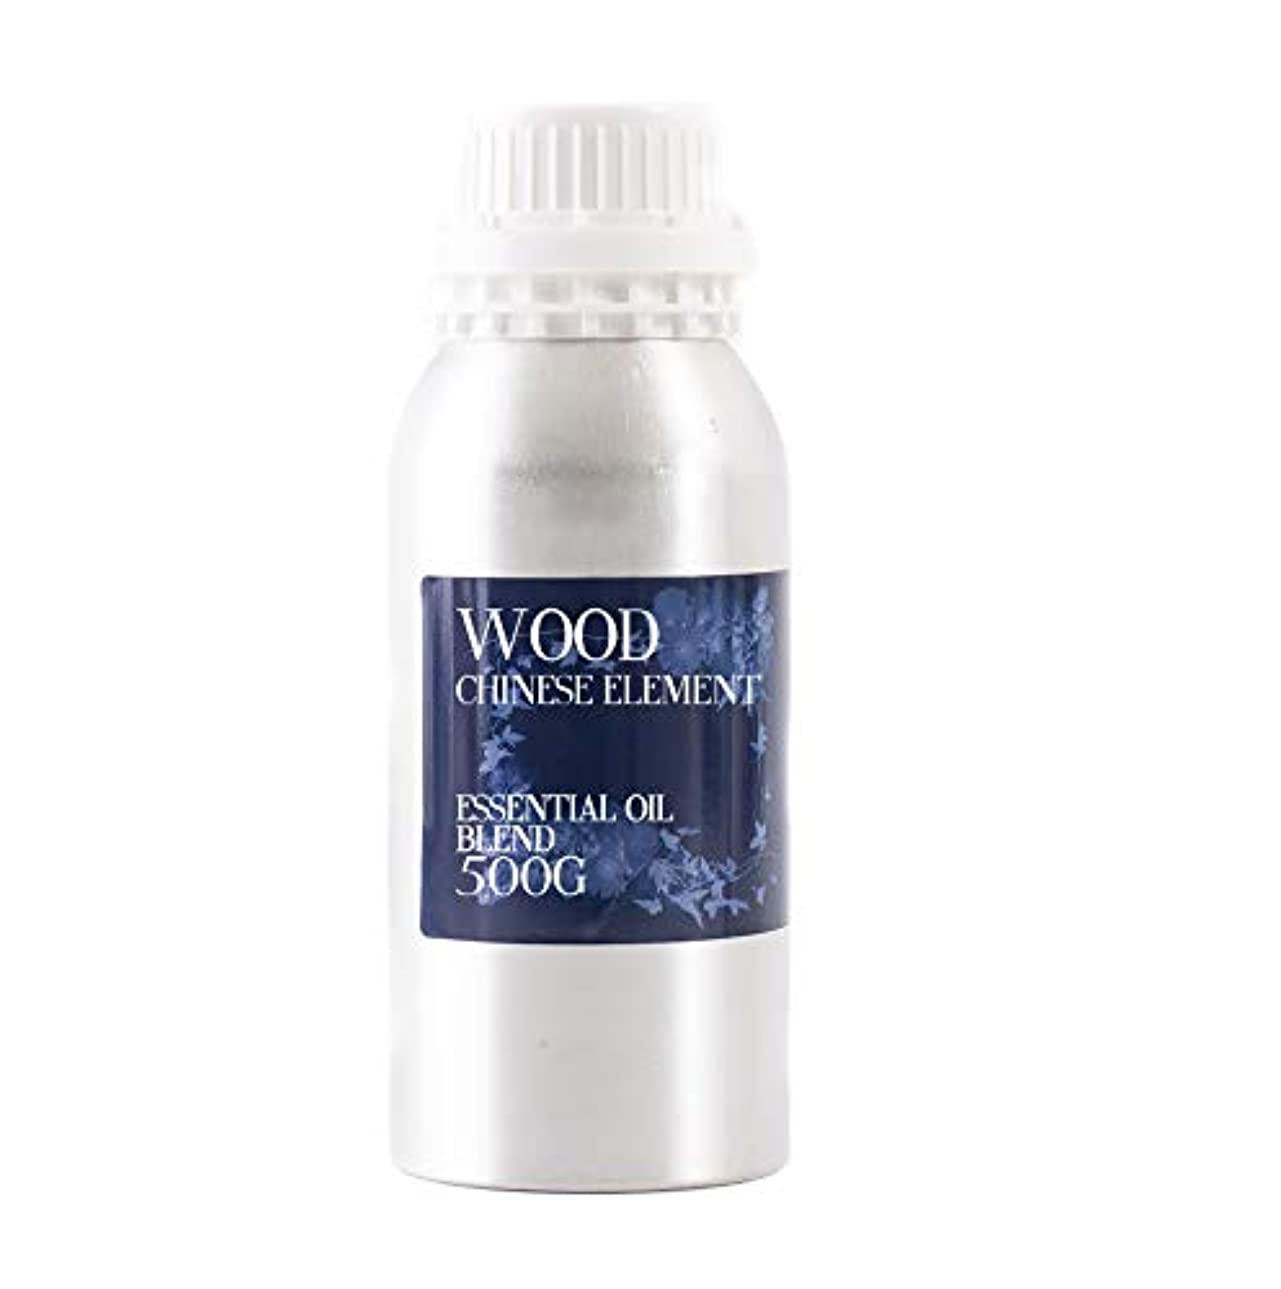 Mystix London | Chinese Wood Element Essential Oil Blend - 500g